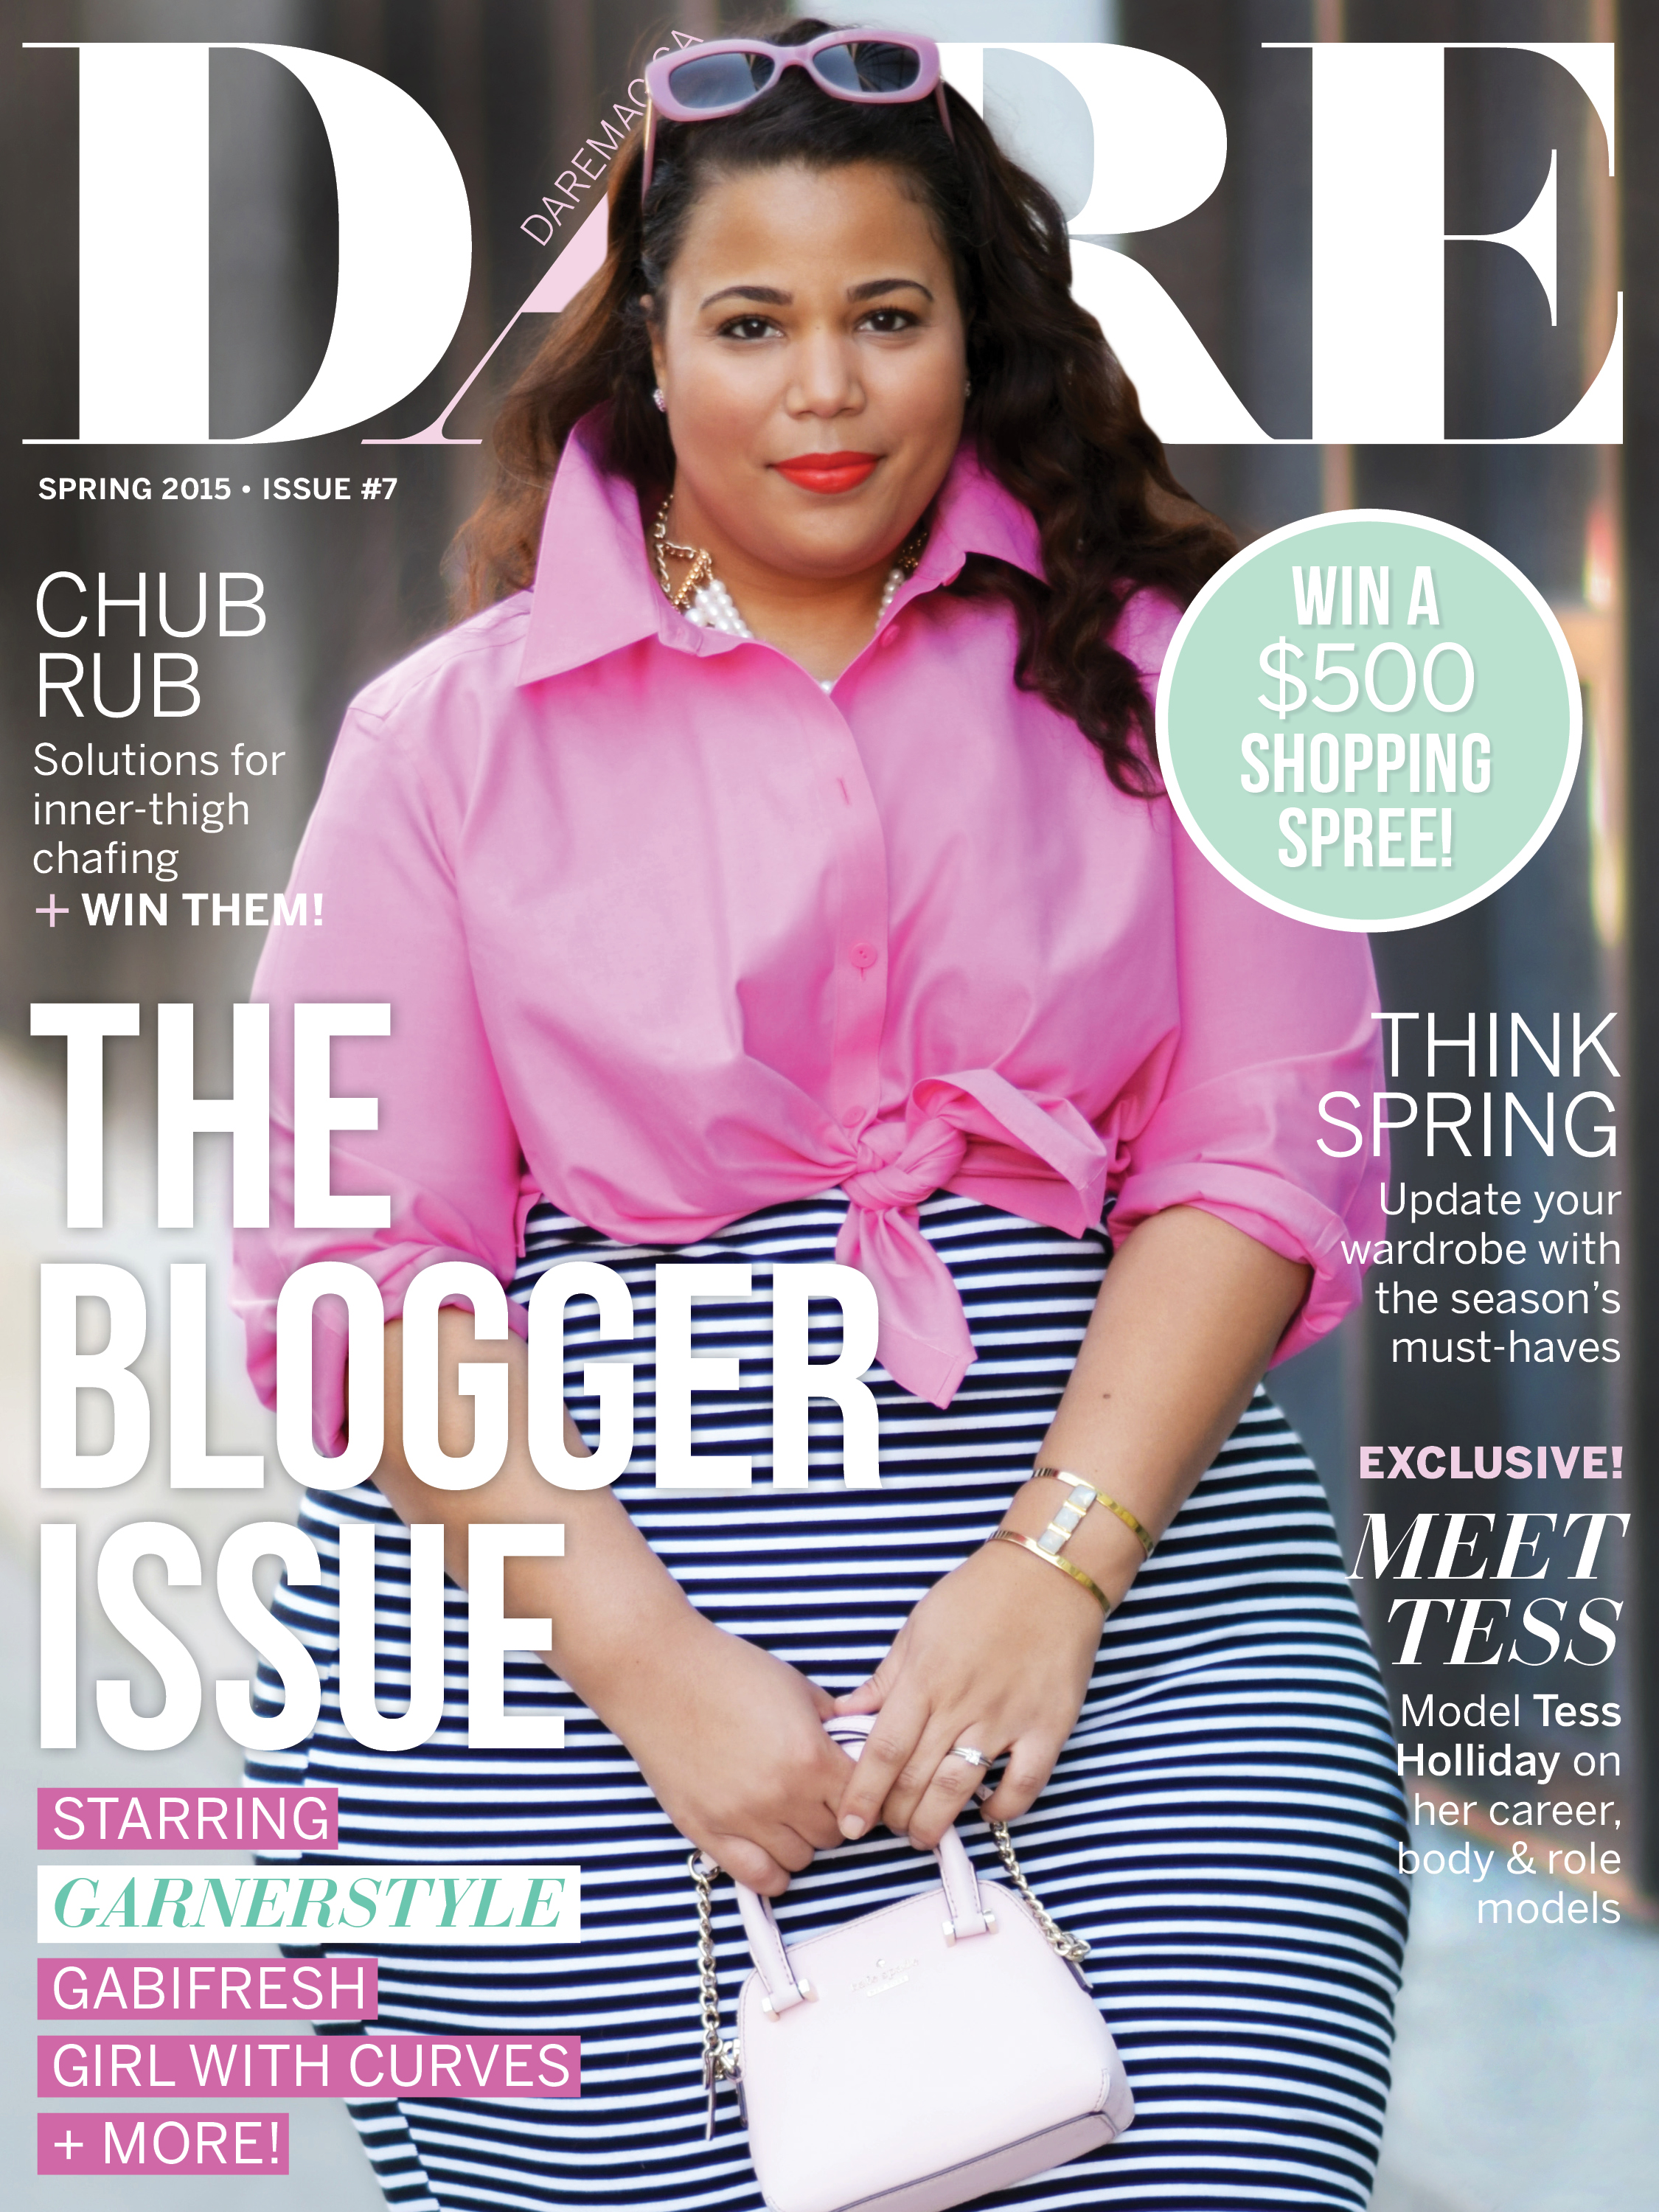 Curves and confidence: the shift towards plus-size ...